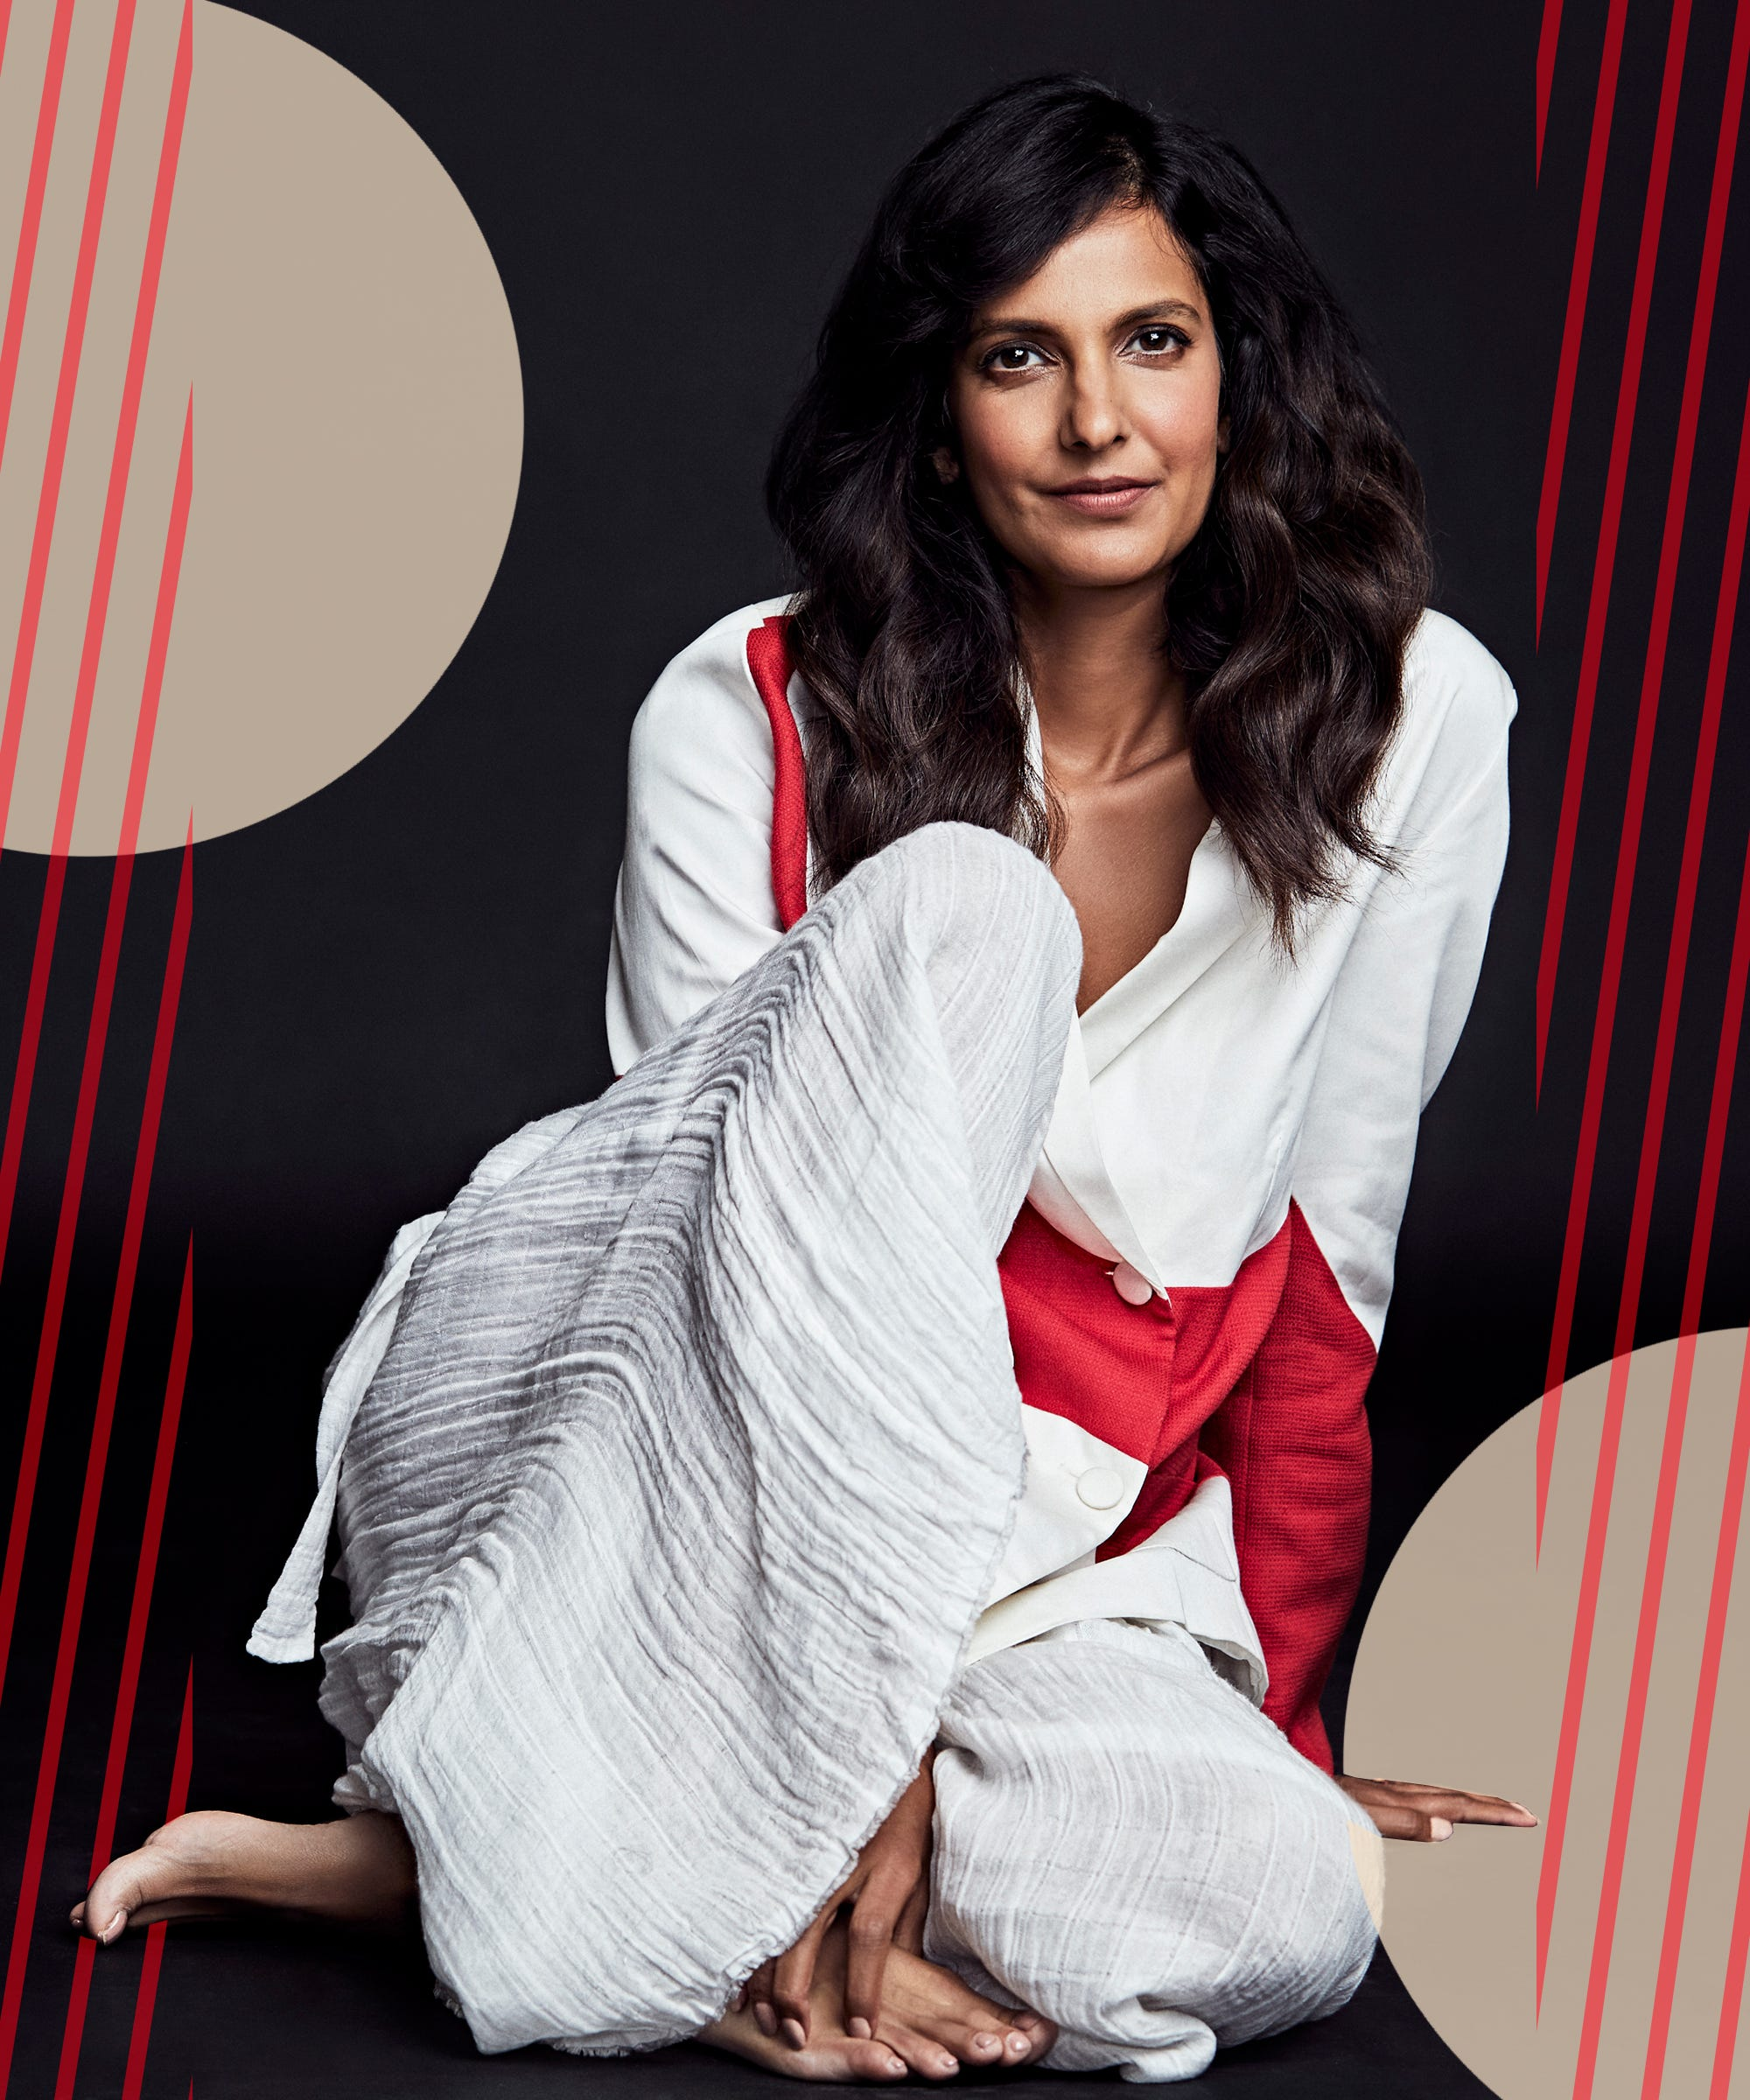 Poorna Jagannathan Gives Us The First Details About Mindy Kaling's Netflix Show